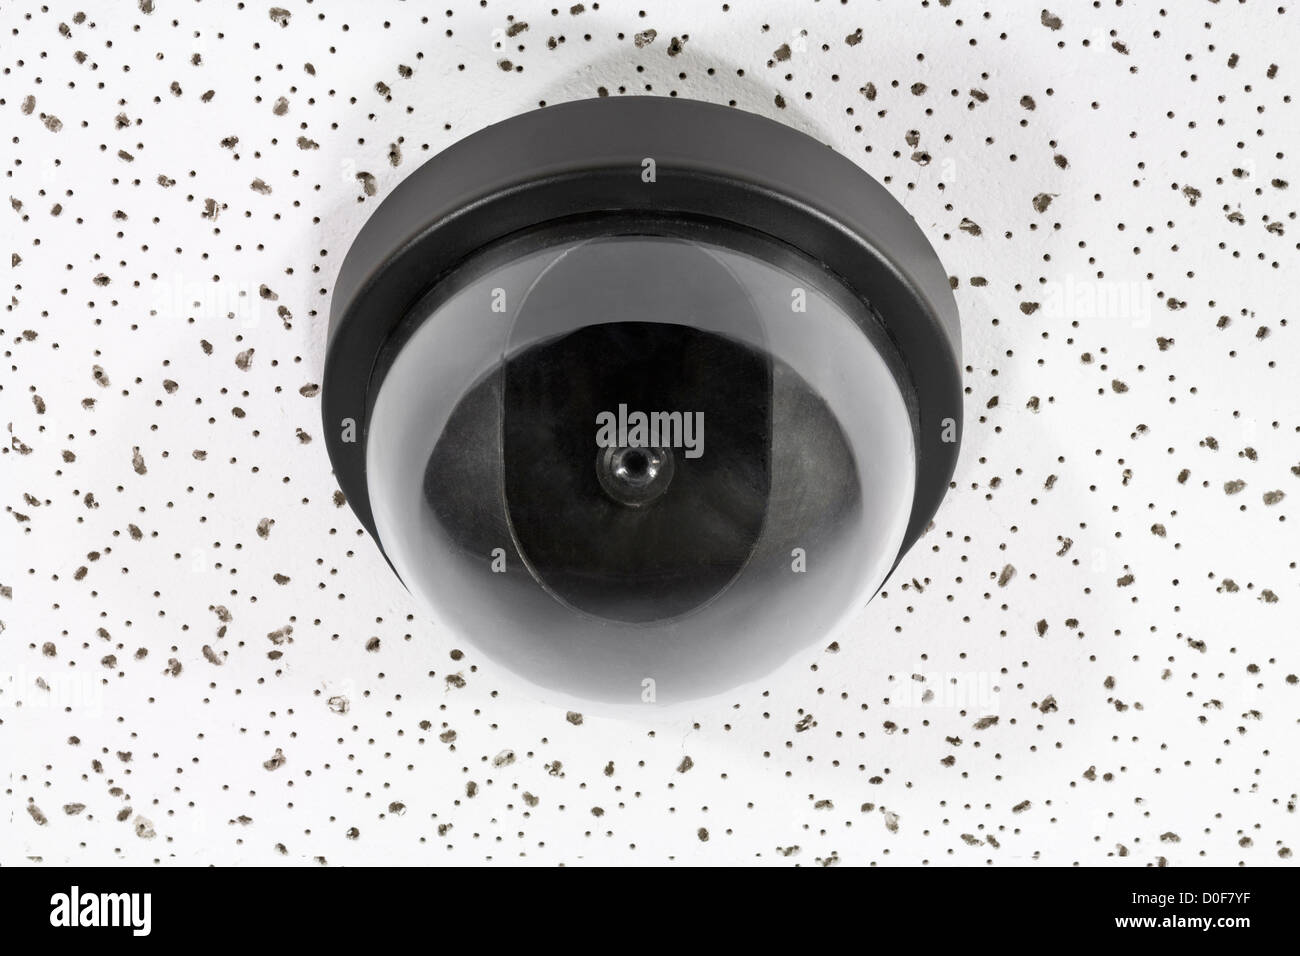 Overhead security camera globe on acoustic tile. - Stock Image